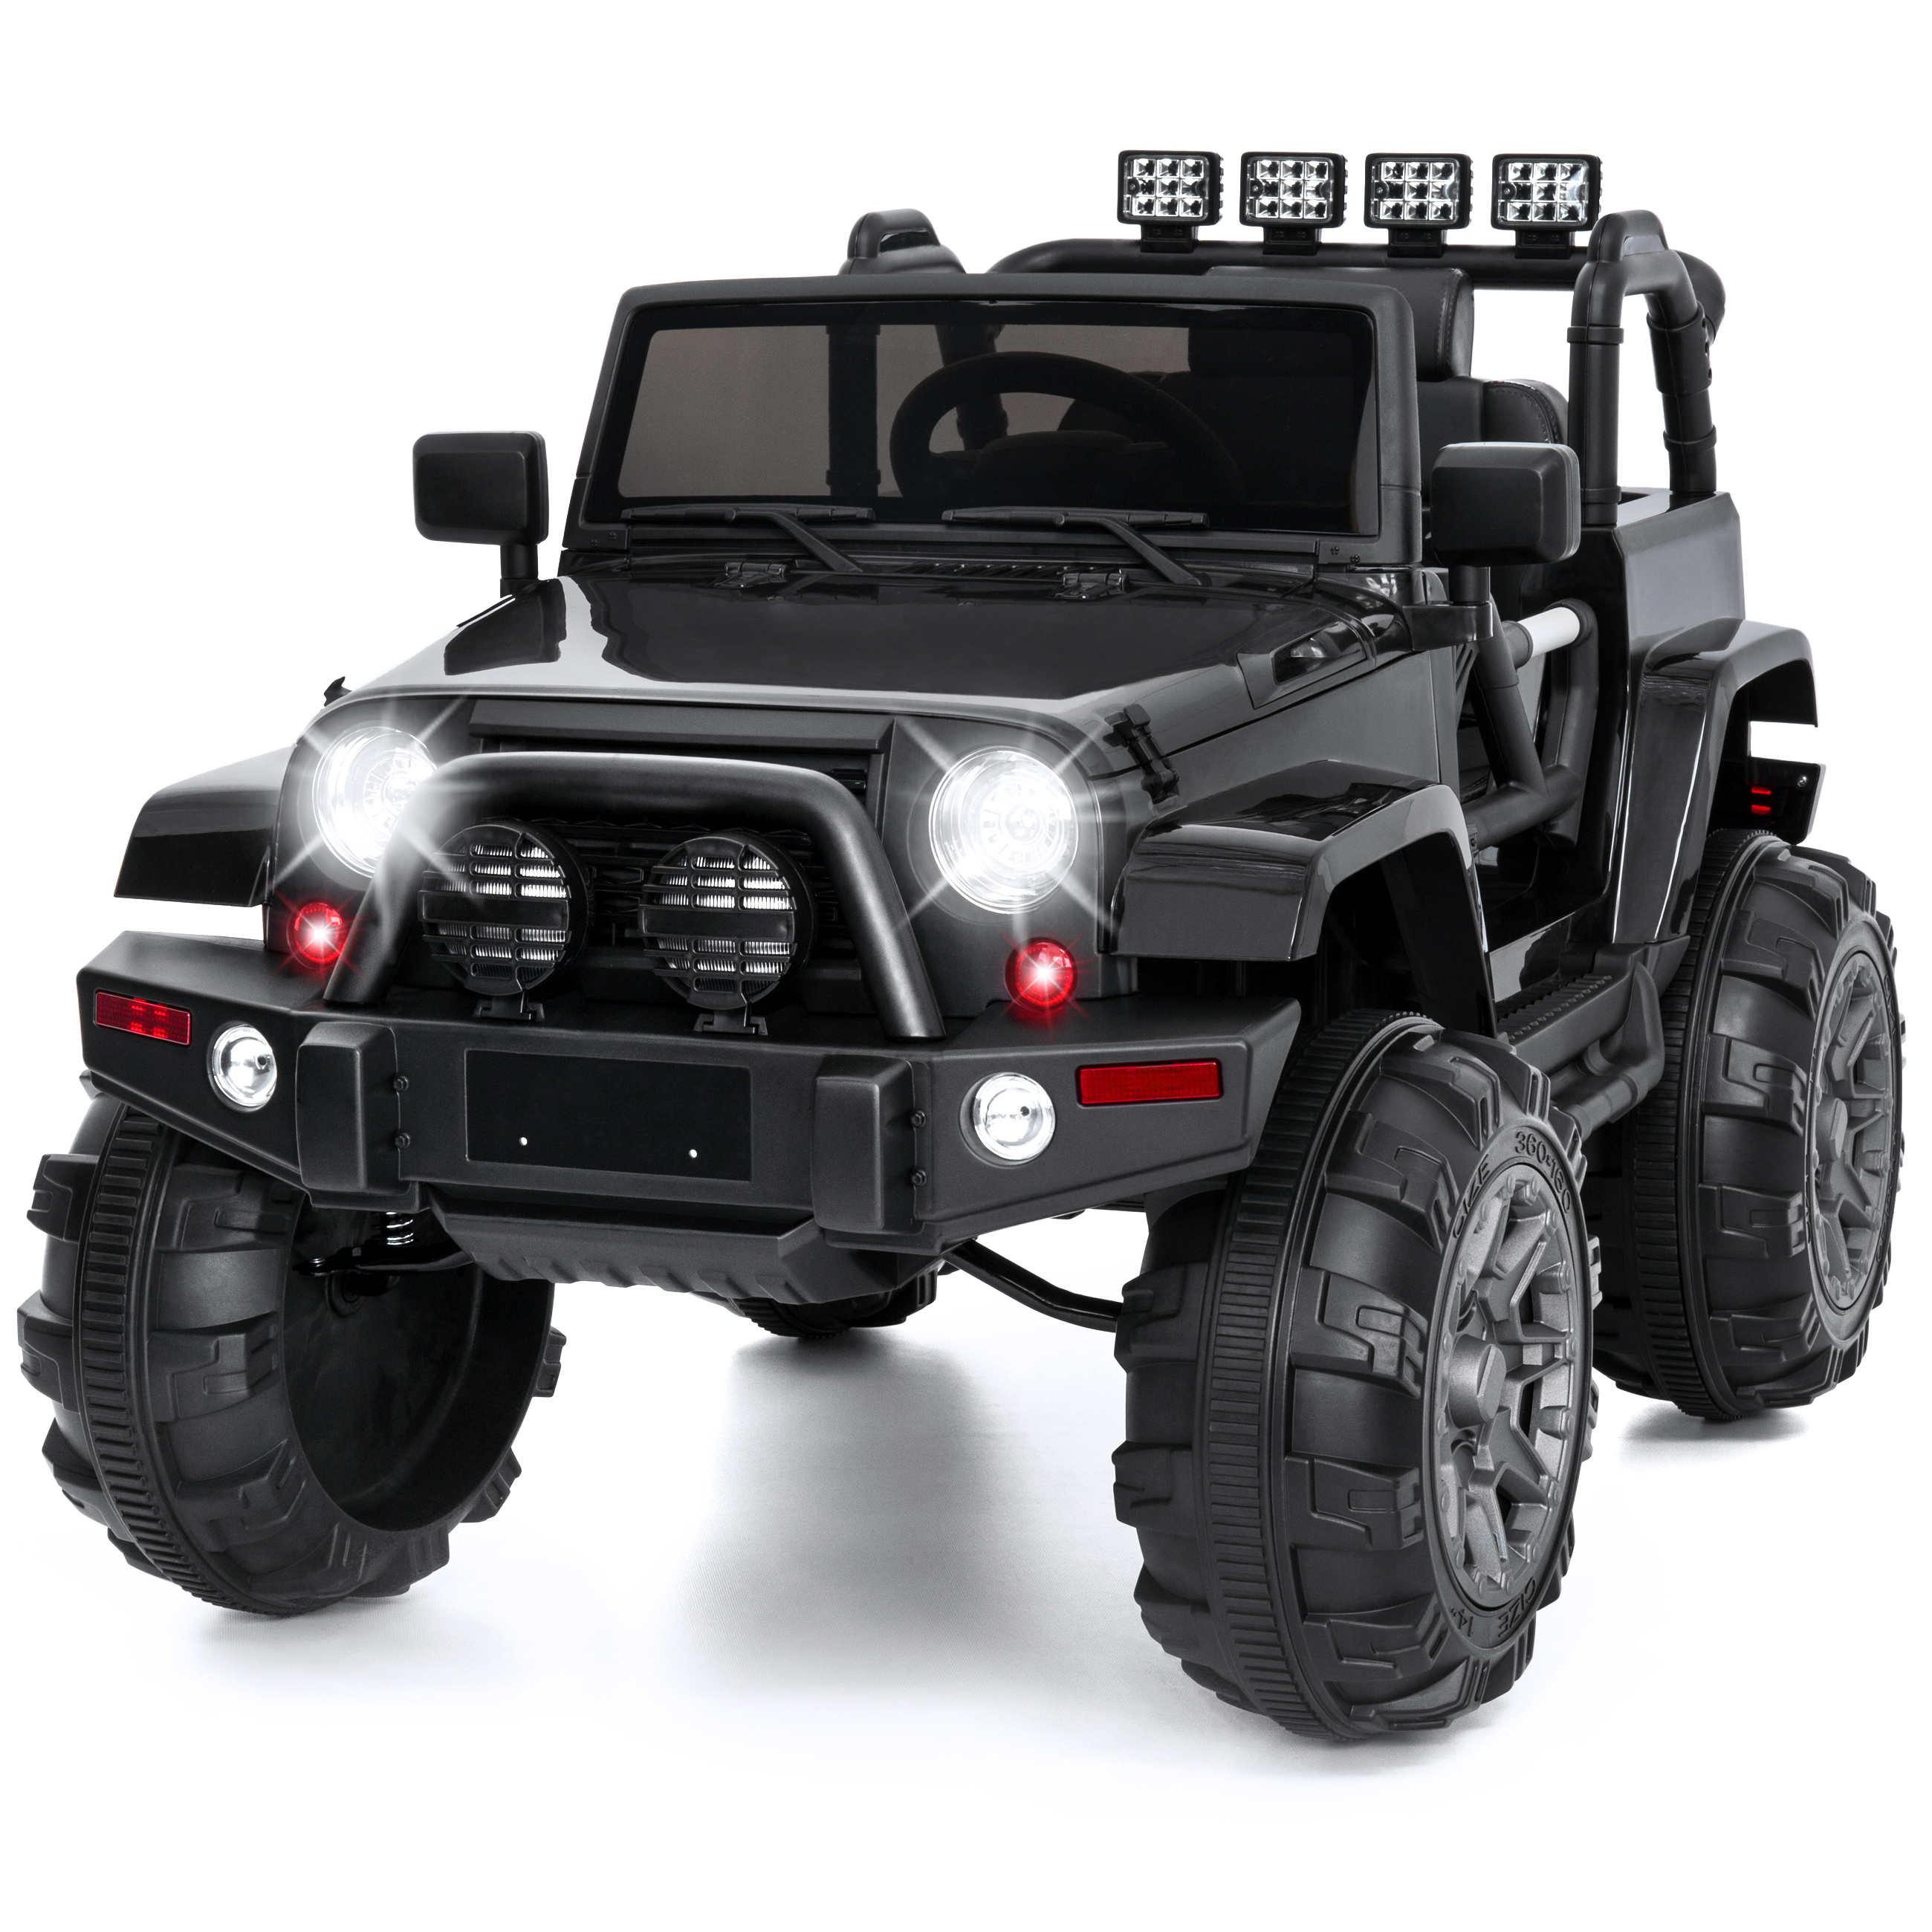 Best Choice Products 12V Kids Ride-On Truck Car w/ Remote Control, 3 Speeds, Spring Suspension, LED Lights, AUX - Black